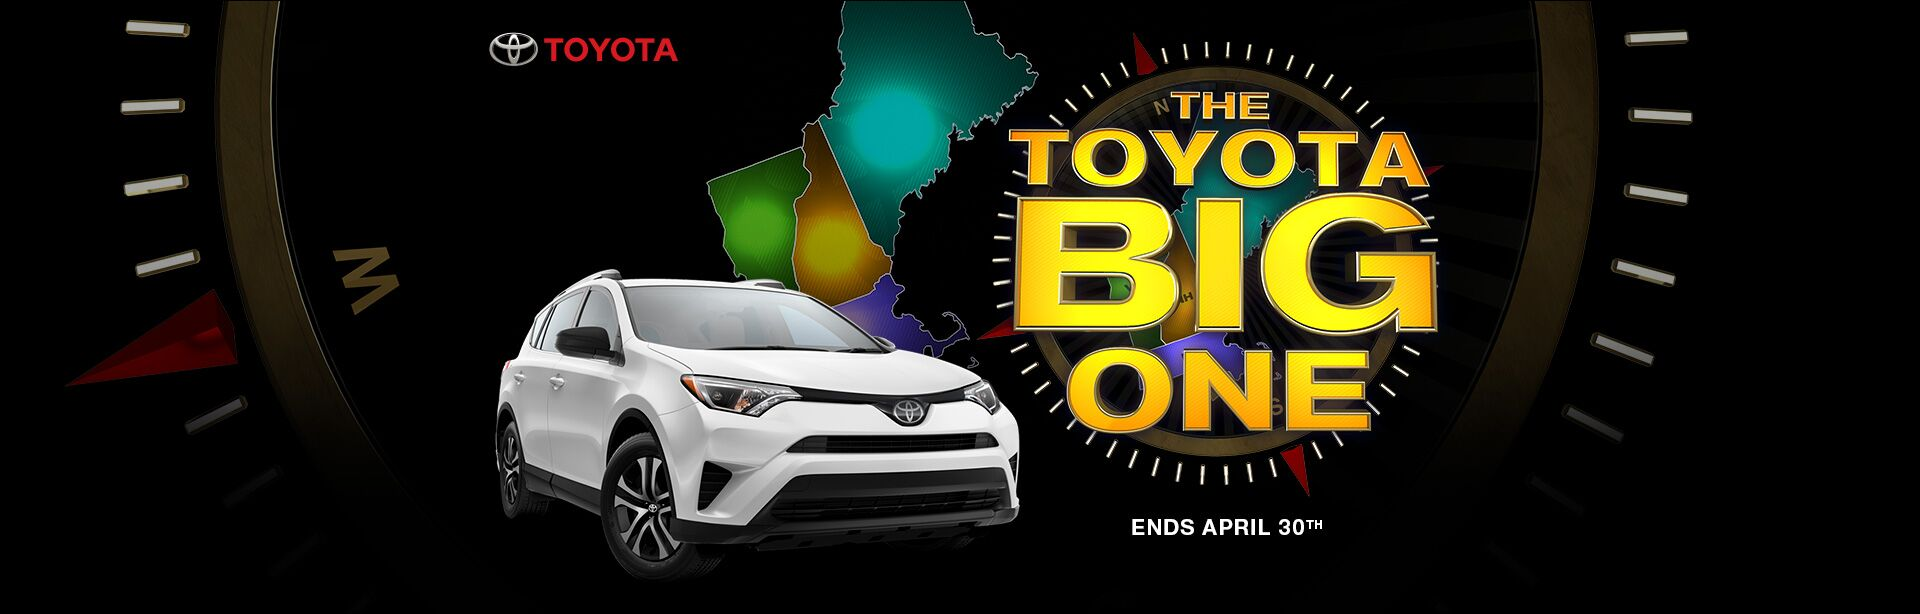 The Toyota BIG ONE